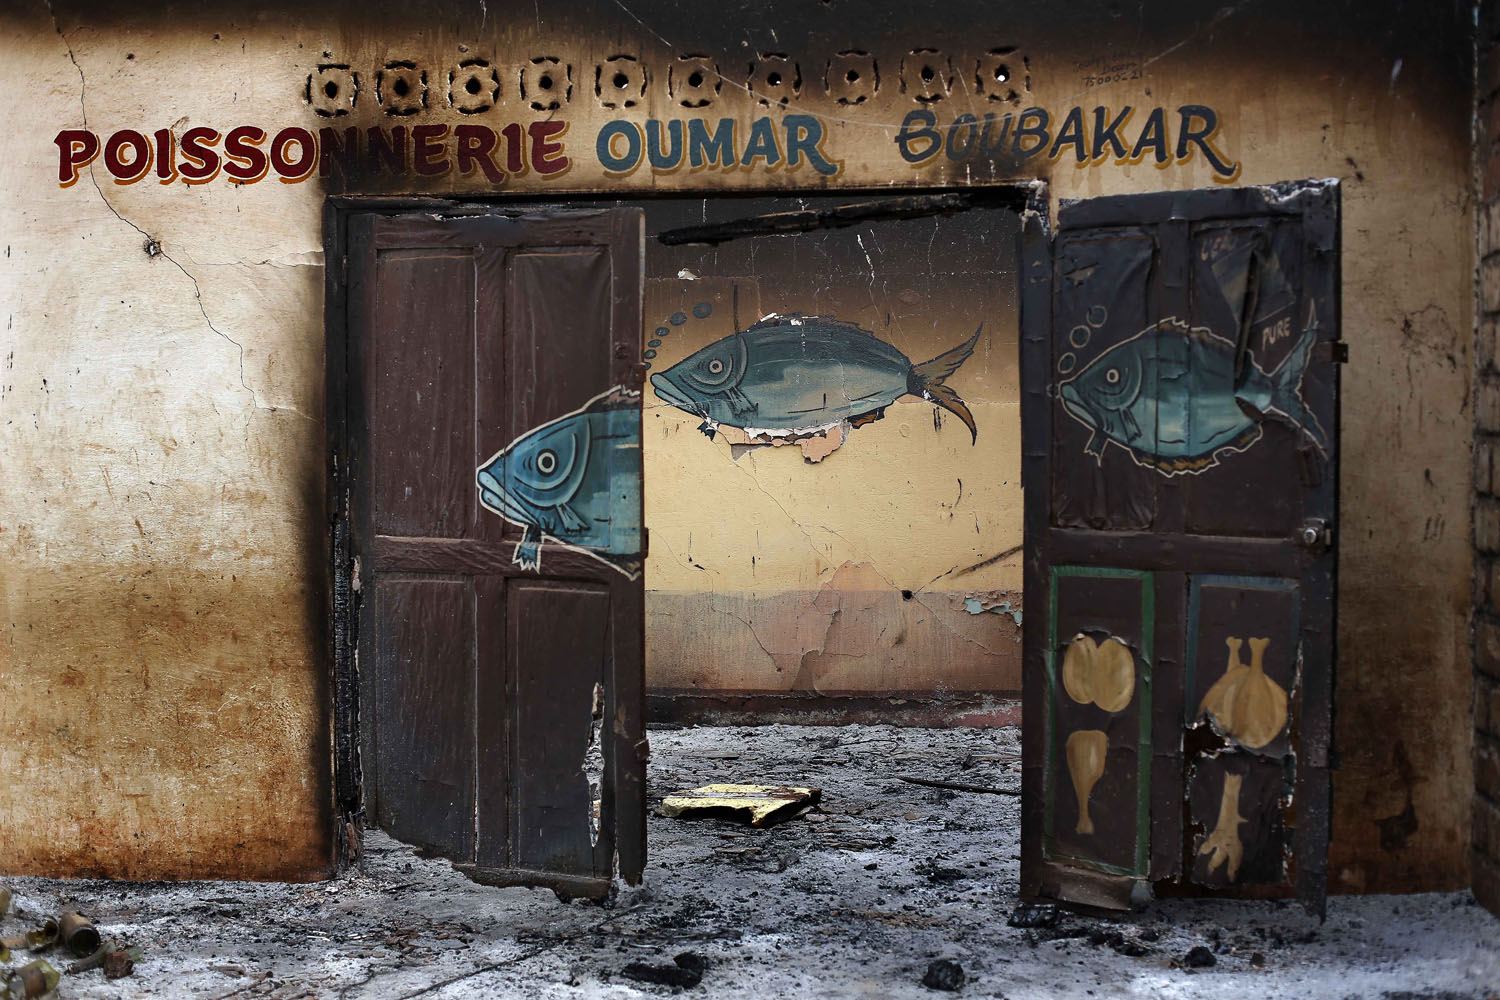 The following photos were taken Feb. 4, 2014 in Bangui, Central African Republic: A Muslim-owned fish shop stands looted in the Miskin district of Bangui.